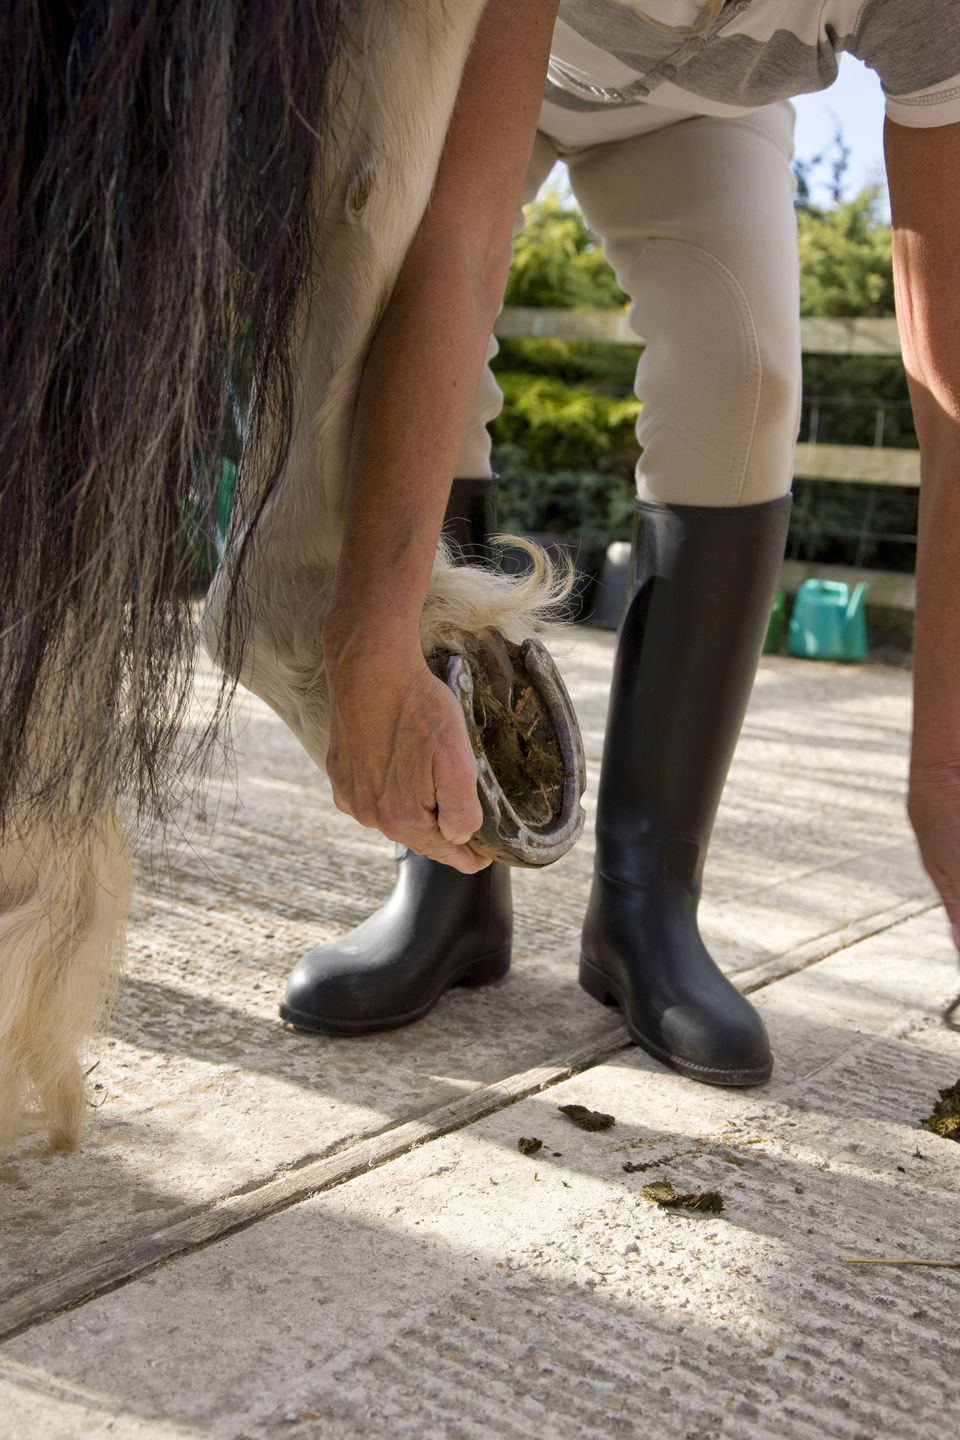 Woman crouching and holding a horse hoof